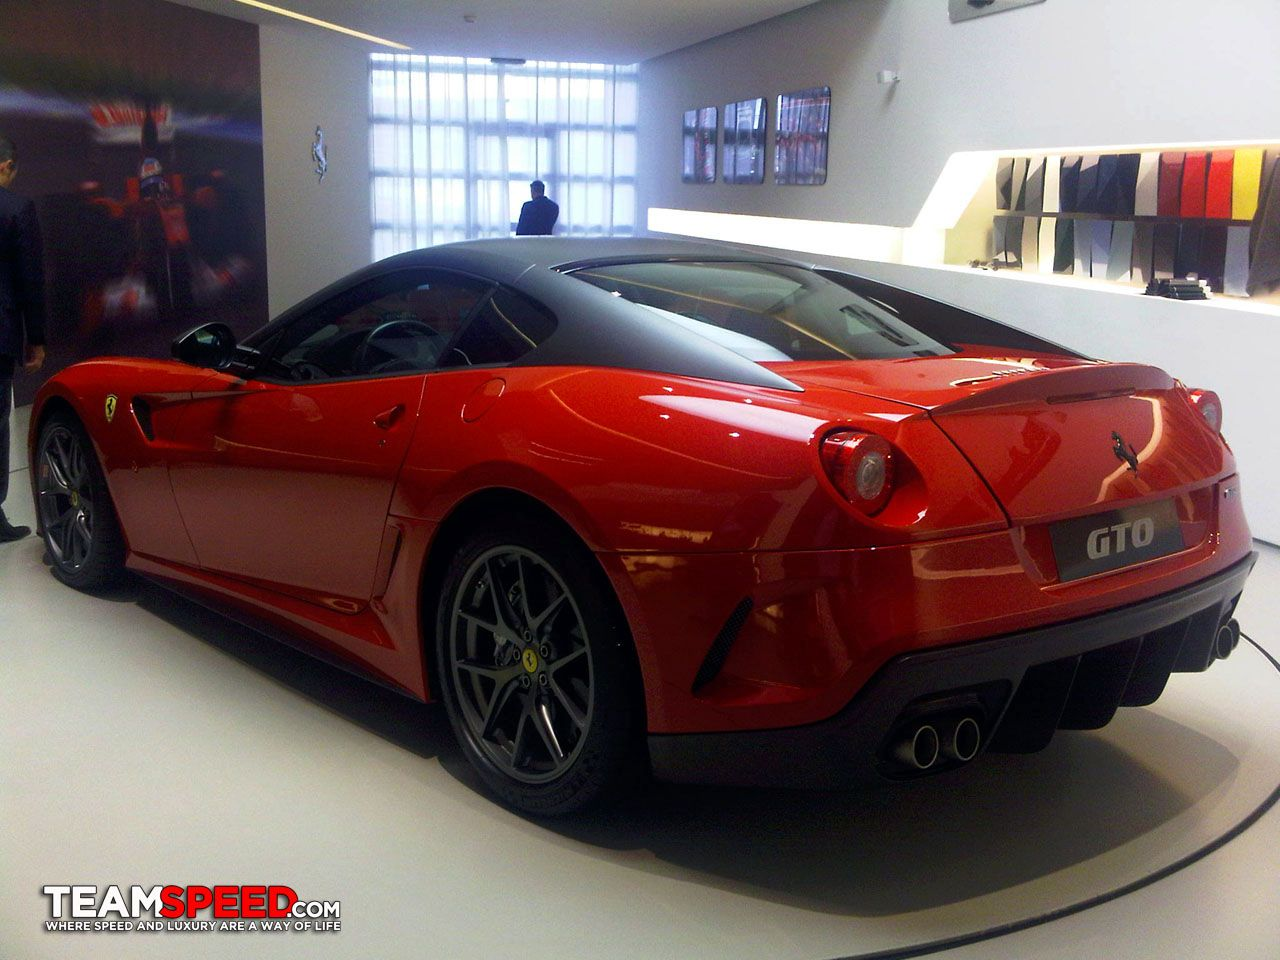 Ferrari 599 GTO These First Fully Uncovered Images With The World Cars Free Download Image Of